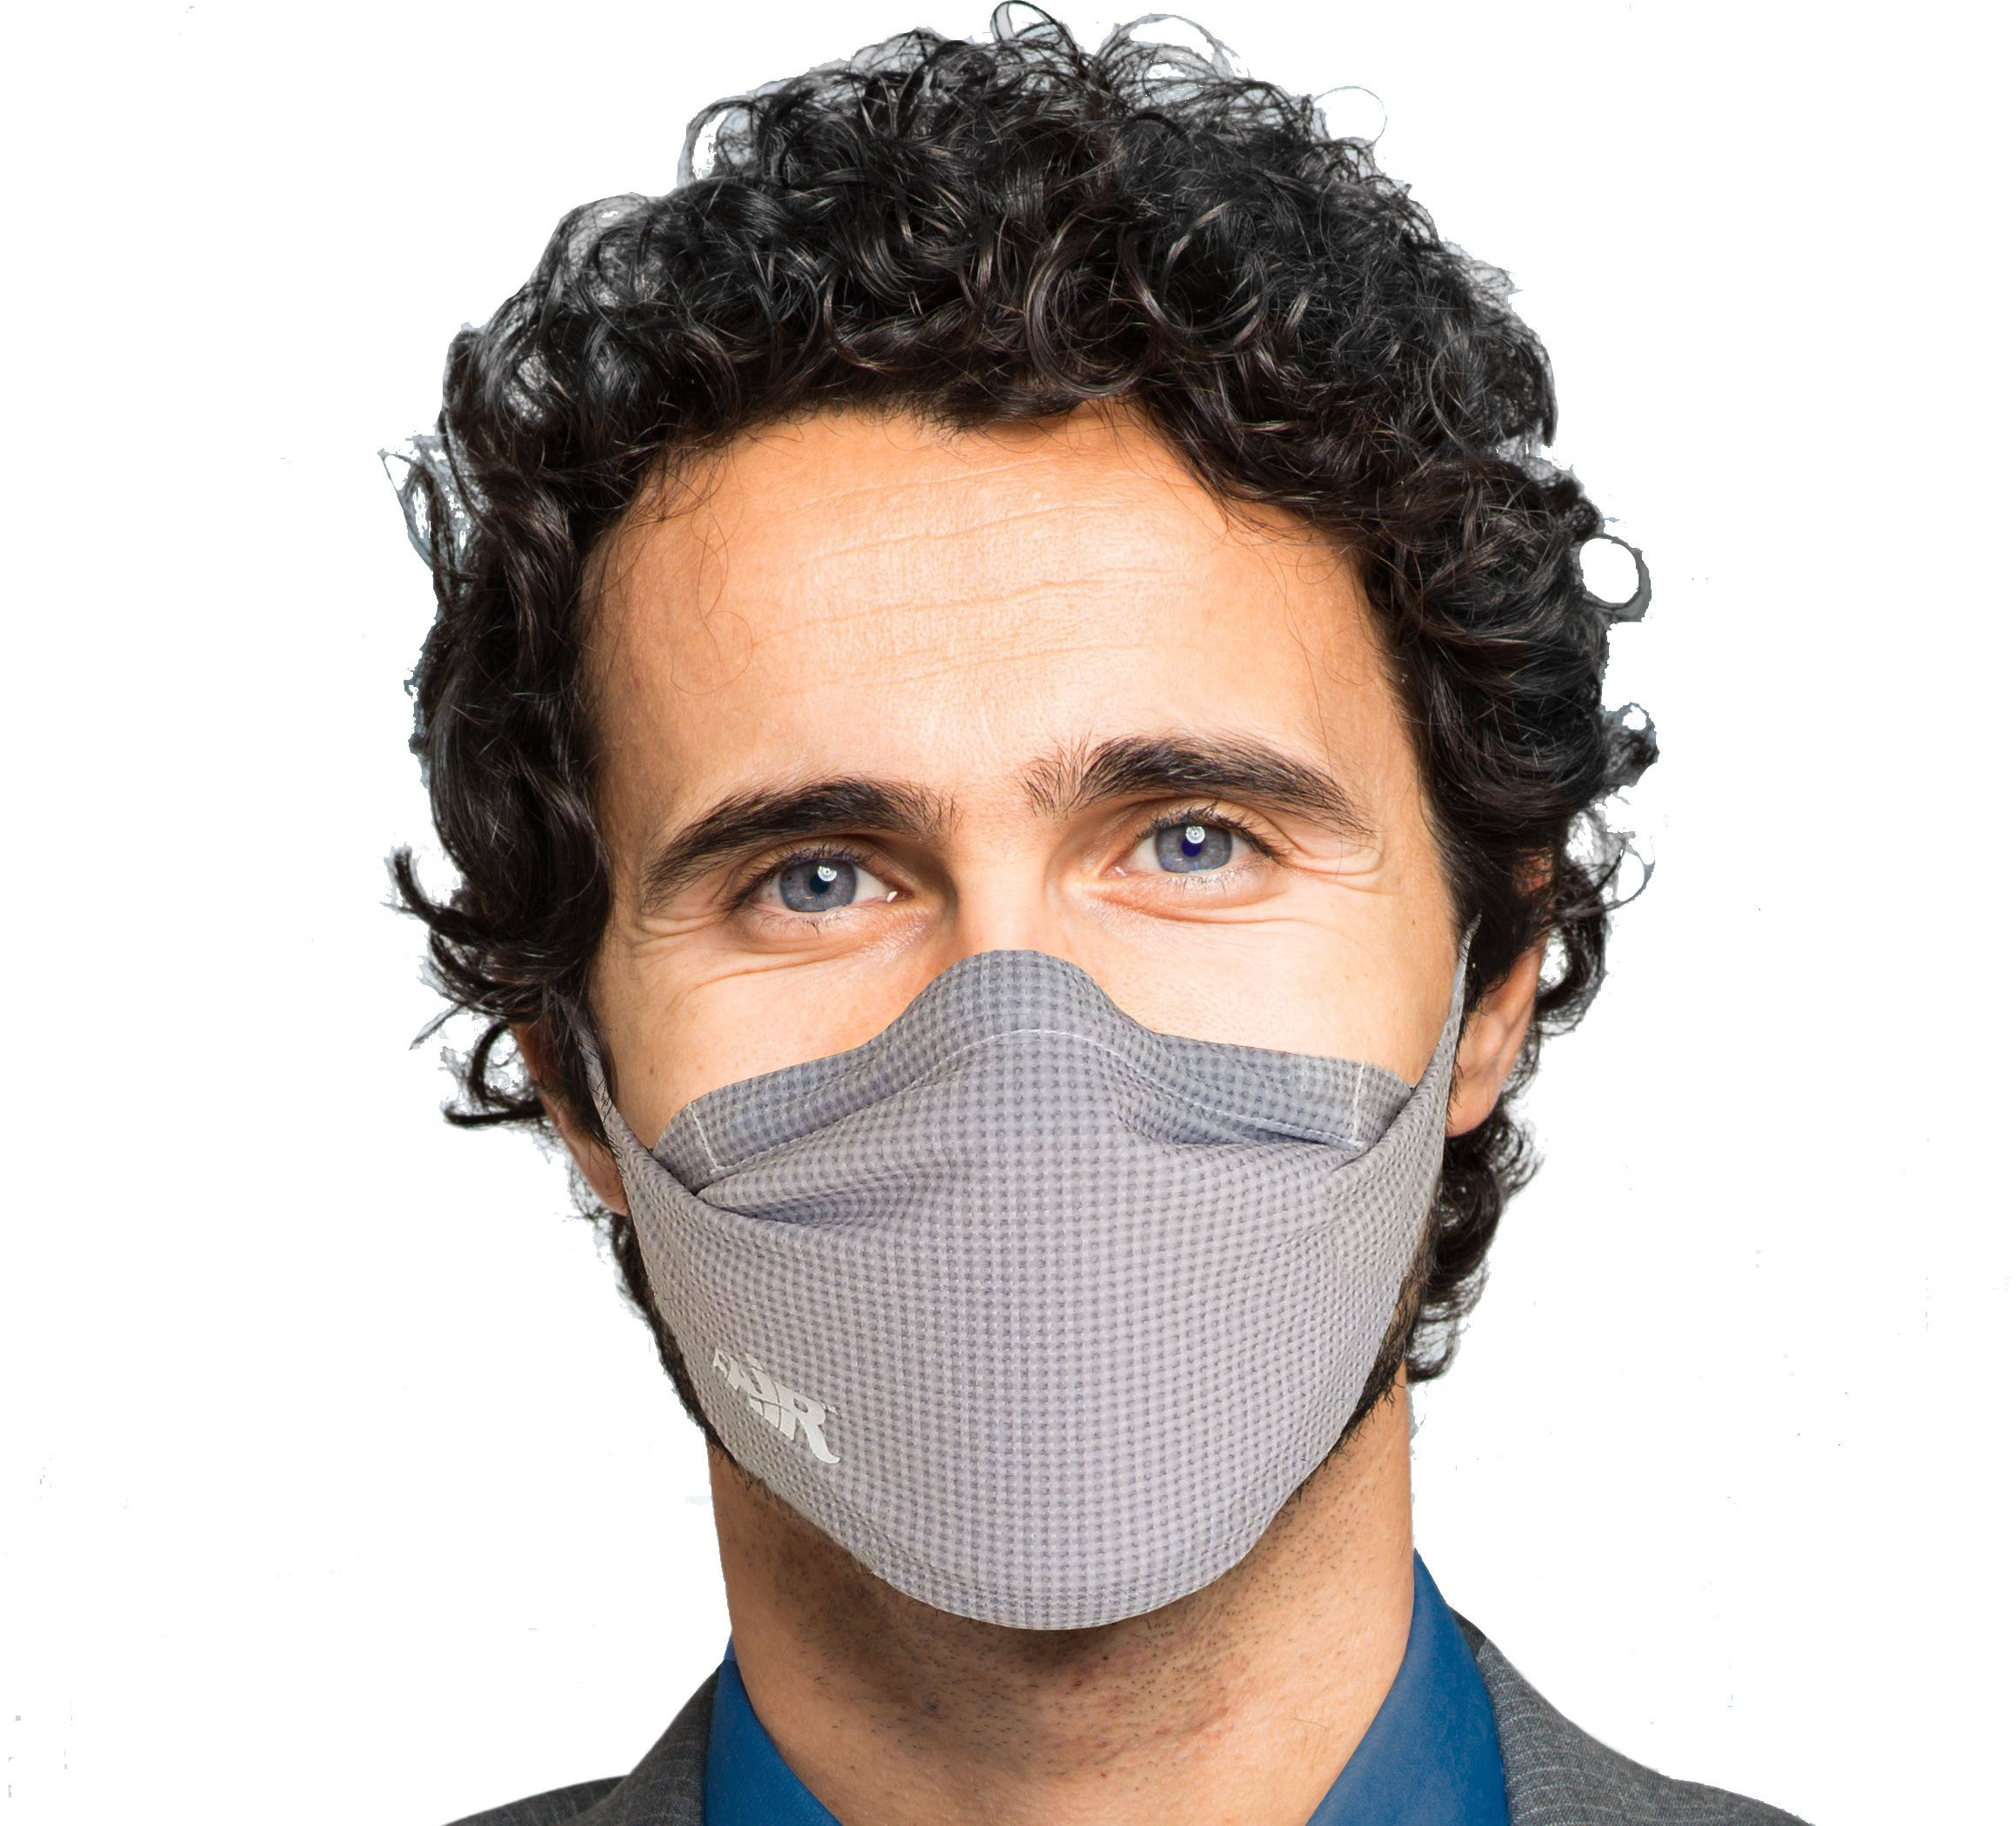 MyAir Comfort Mask, Starter Kit in Screen Play - Made in USA.